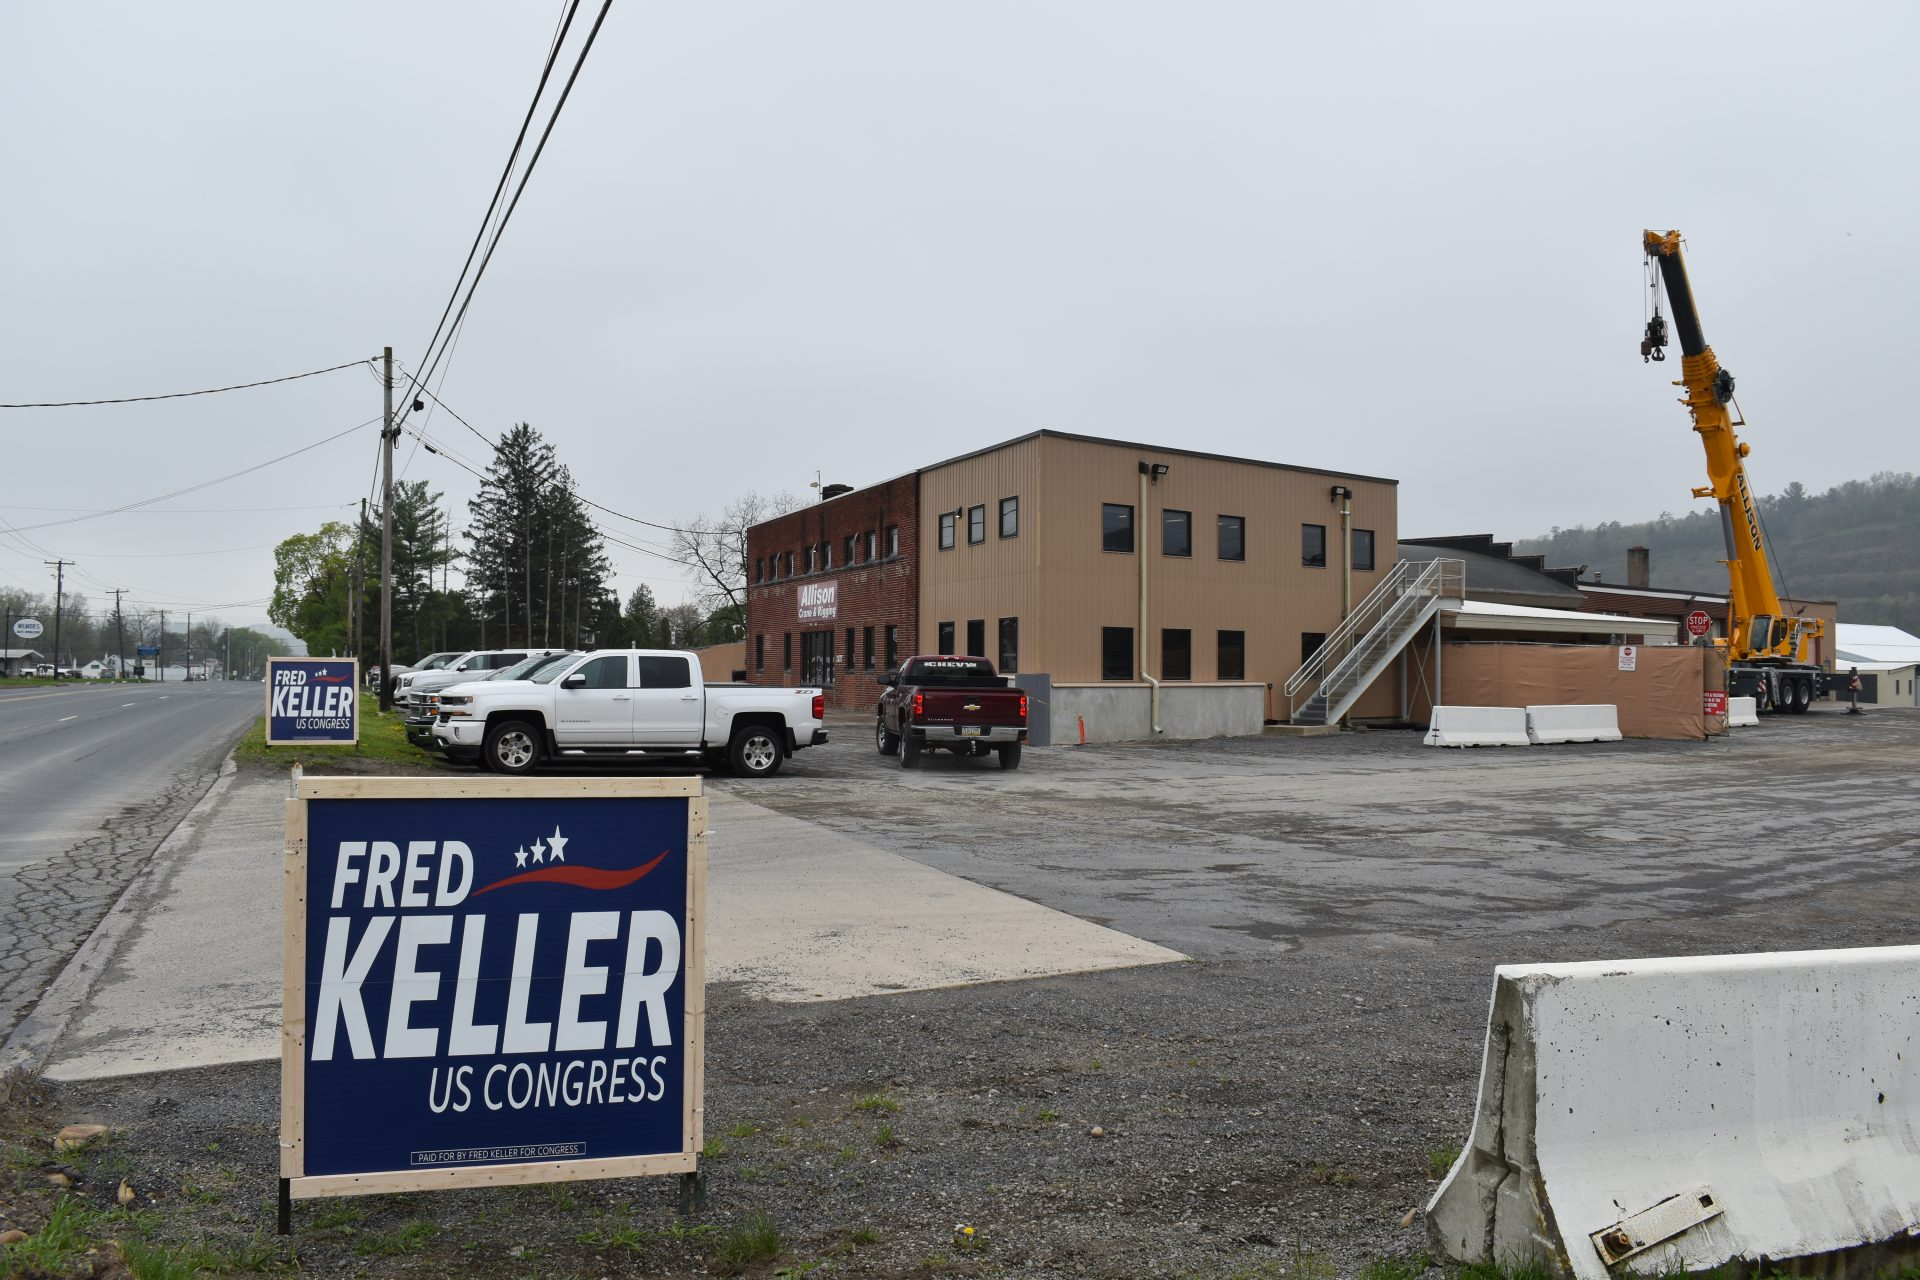 Signs for Republican Fred Keller is seen outside Allison Crane & Rigging in Lycoming County on May 2, 2019.